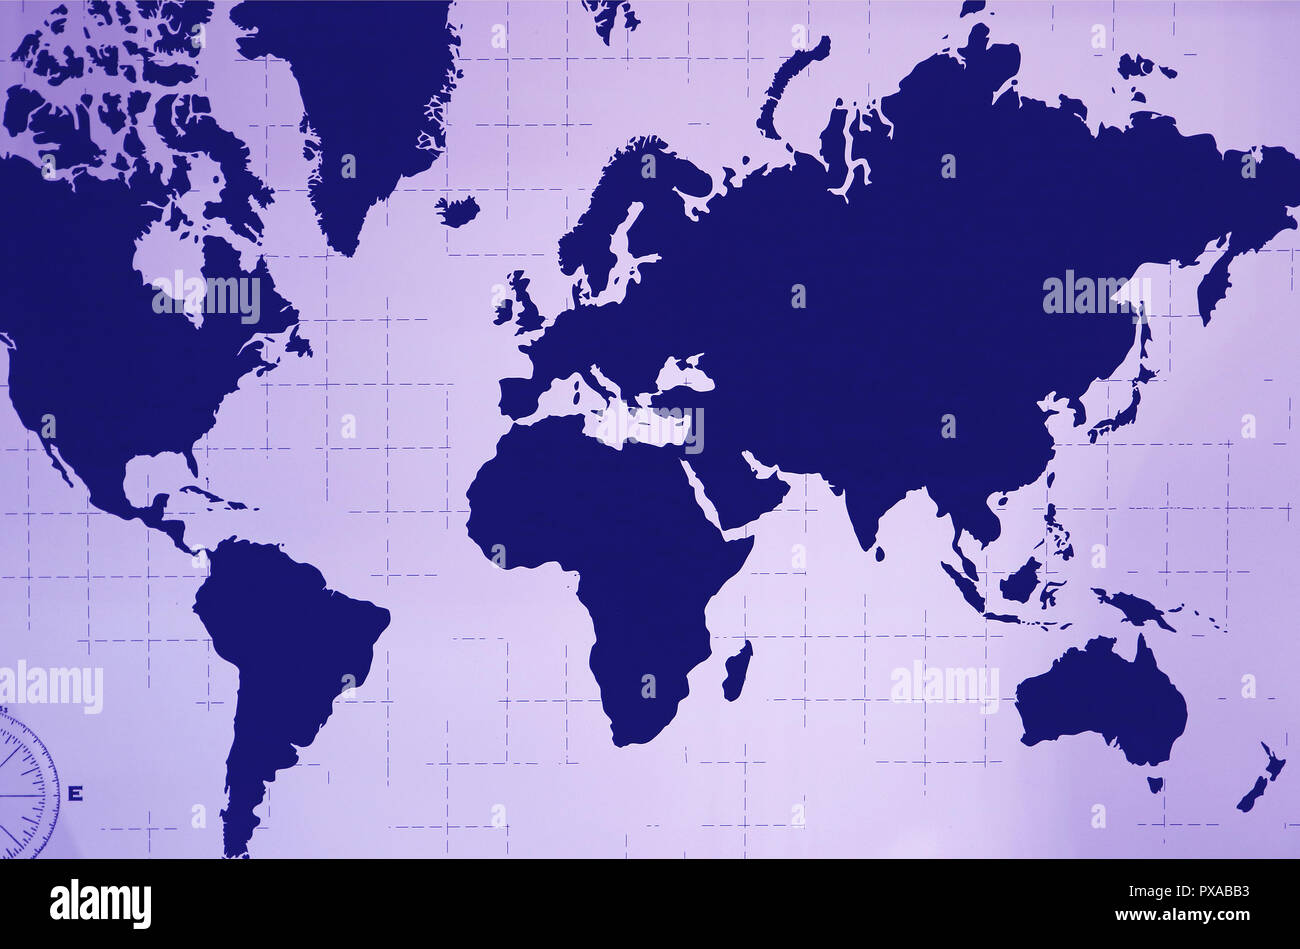 Atlas Decoration World Atlas Wall Decoration In Navy Blue And Pastel Purple Color